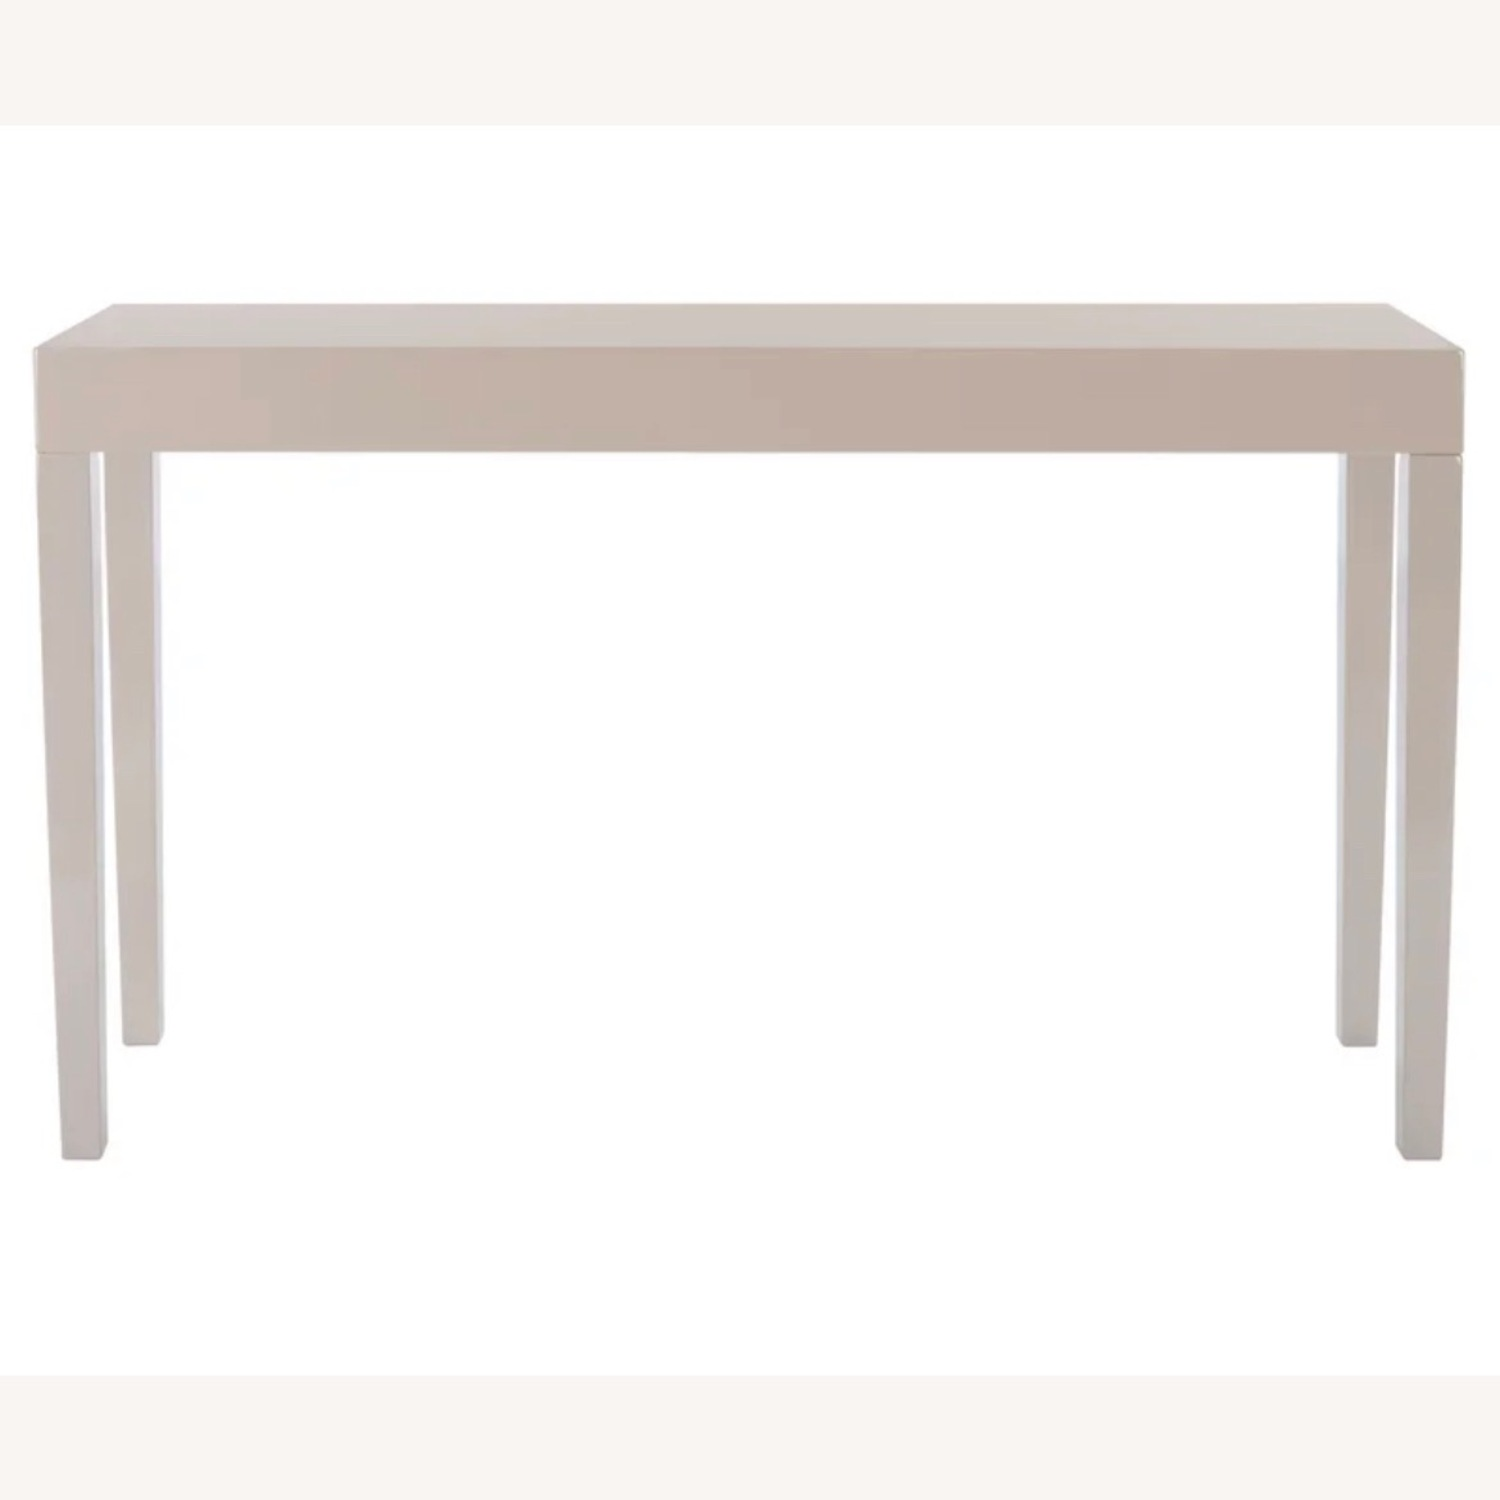 Wayfair Modern Taupe Console/Entry Table - image-4